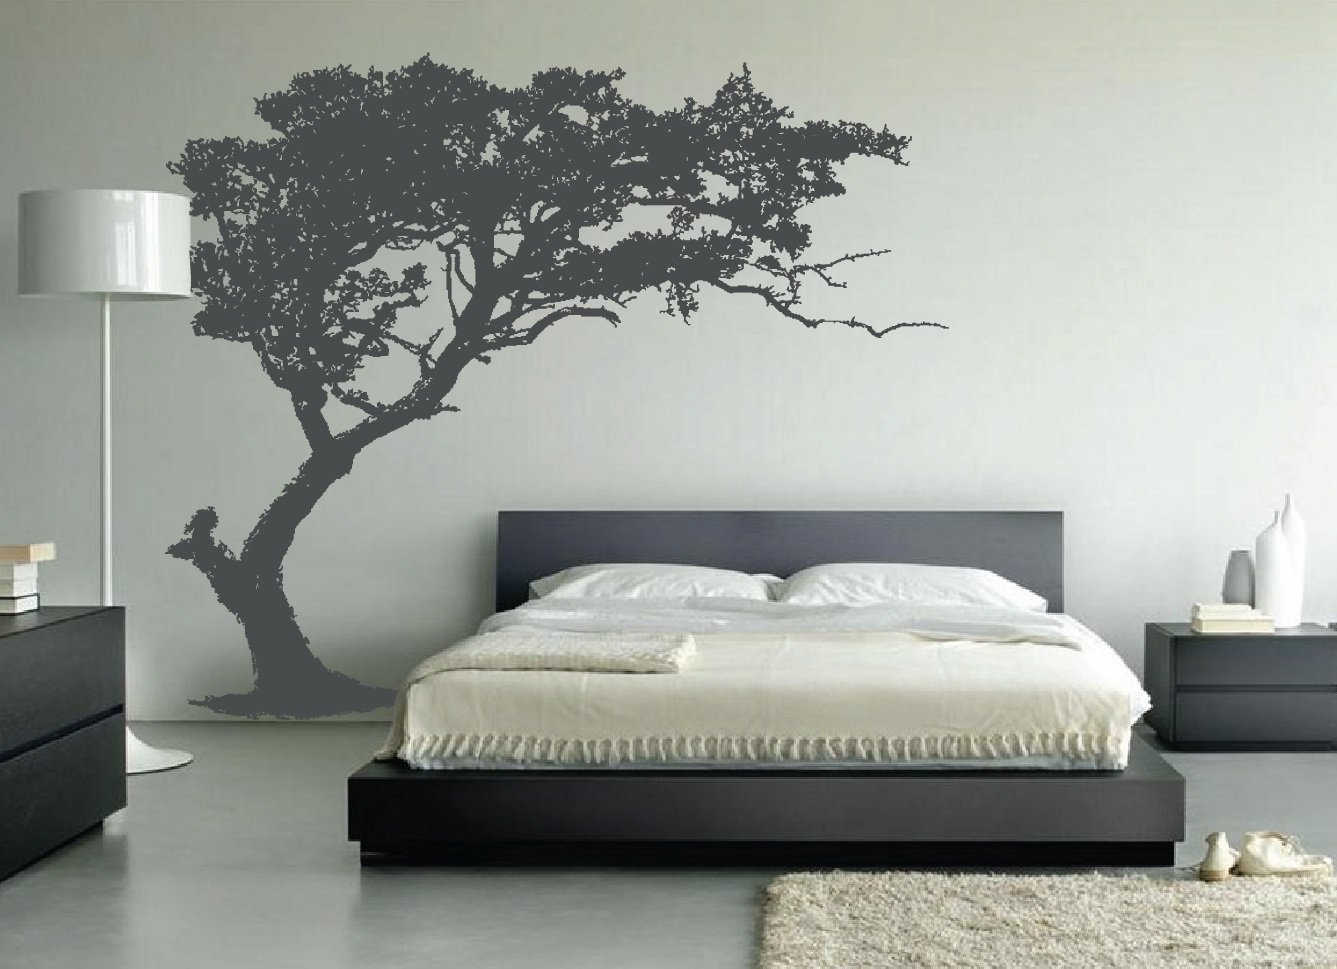 Inspirational Master Bedroom Ideas On a Budget | BlogLet.com